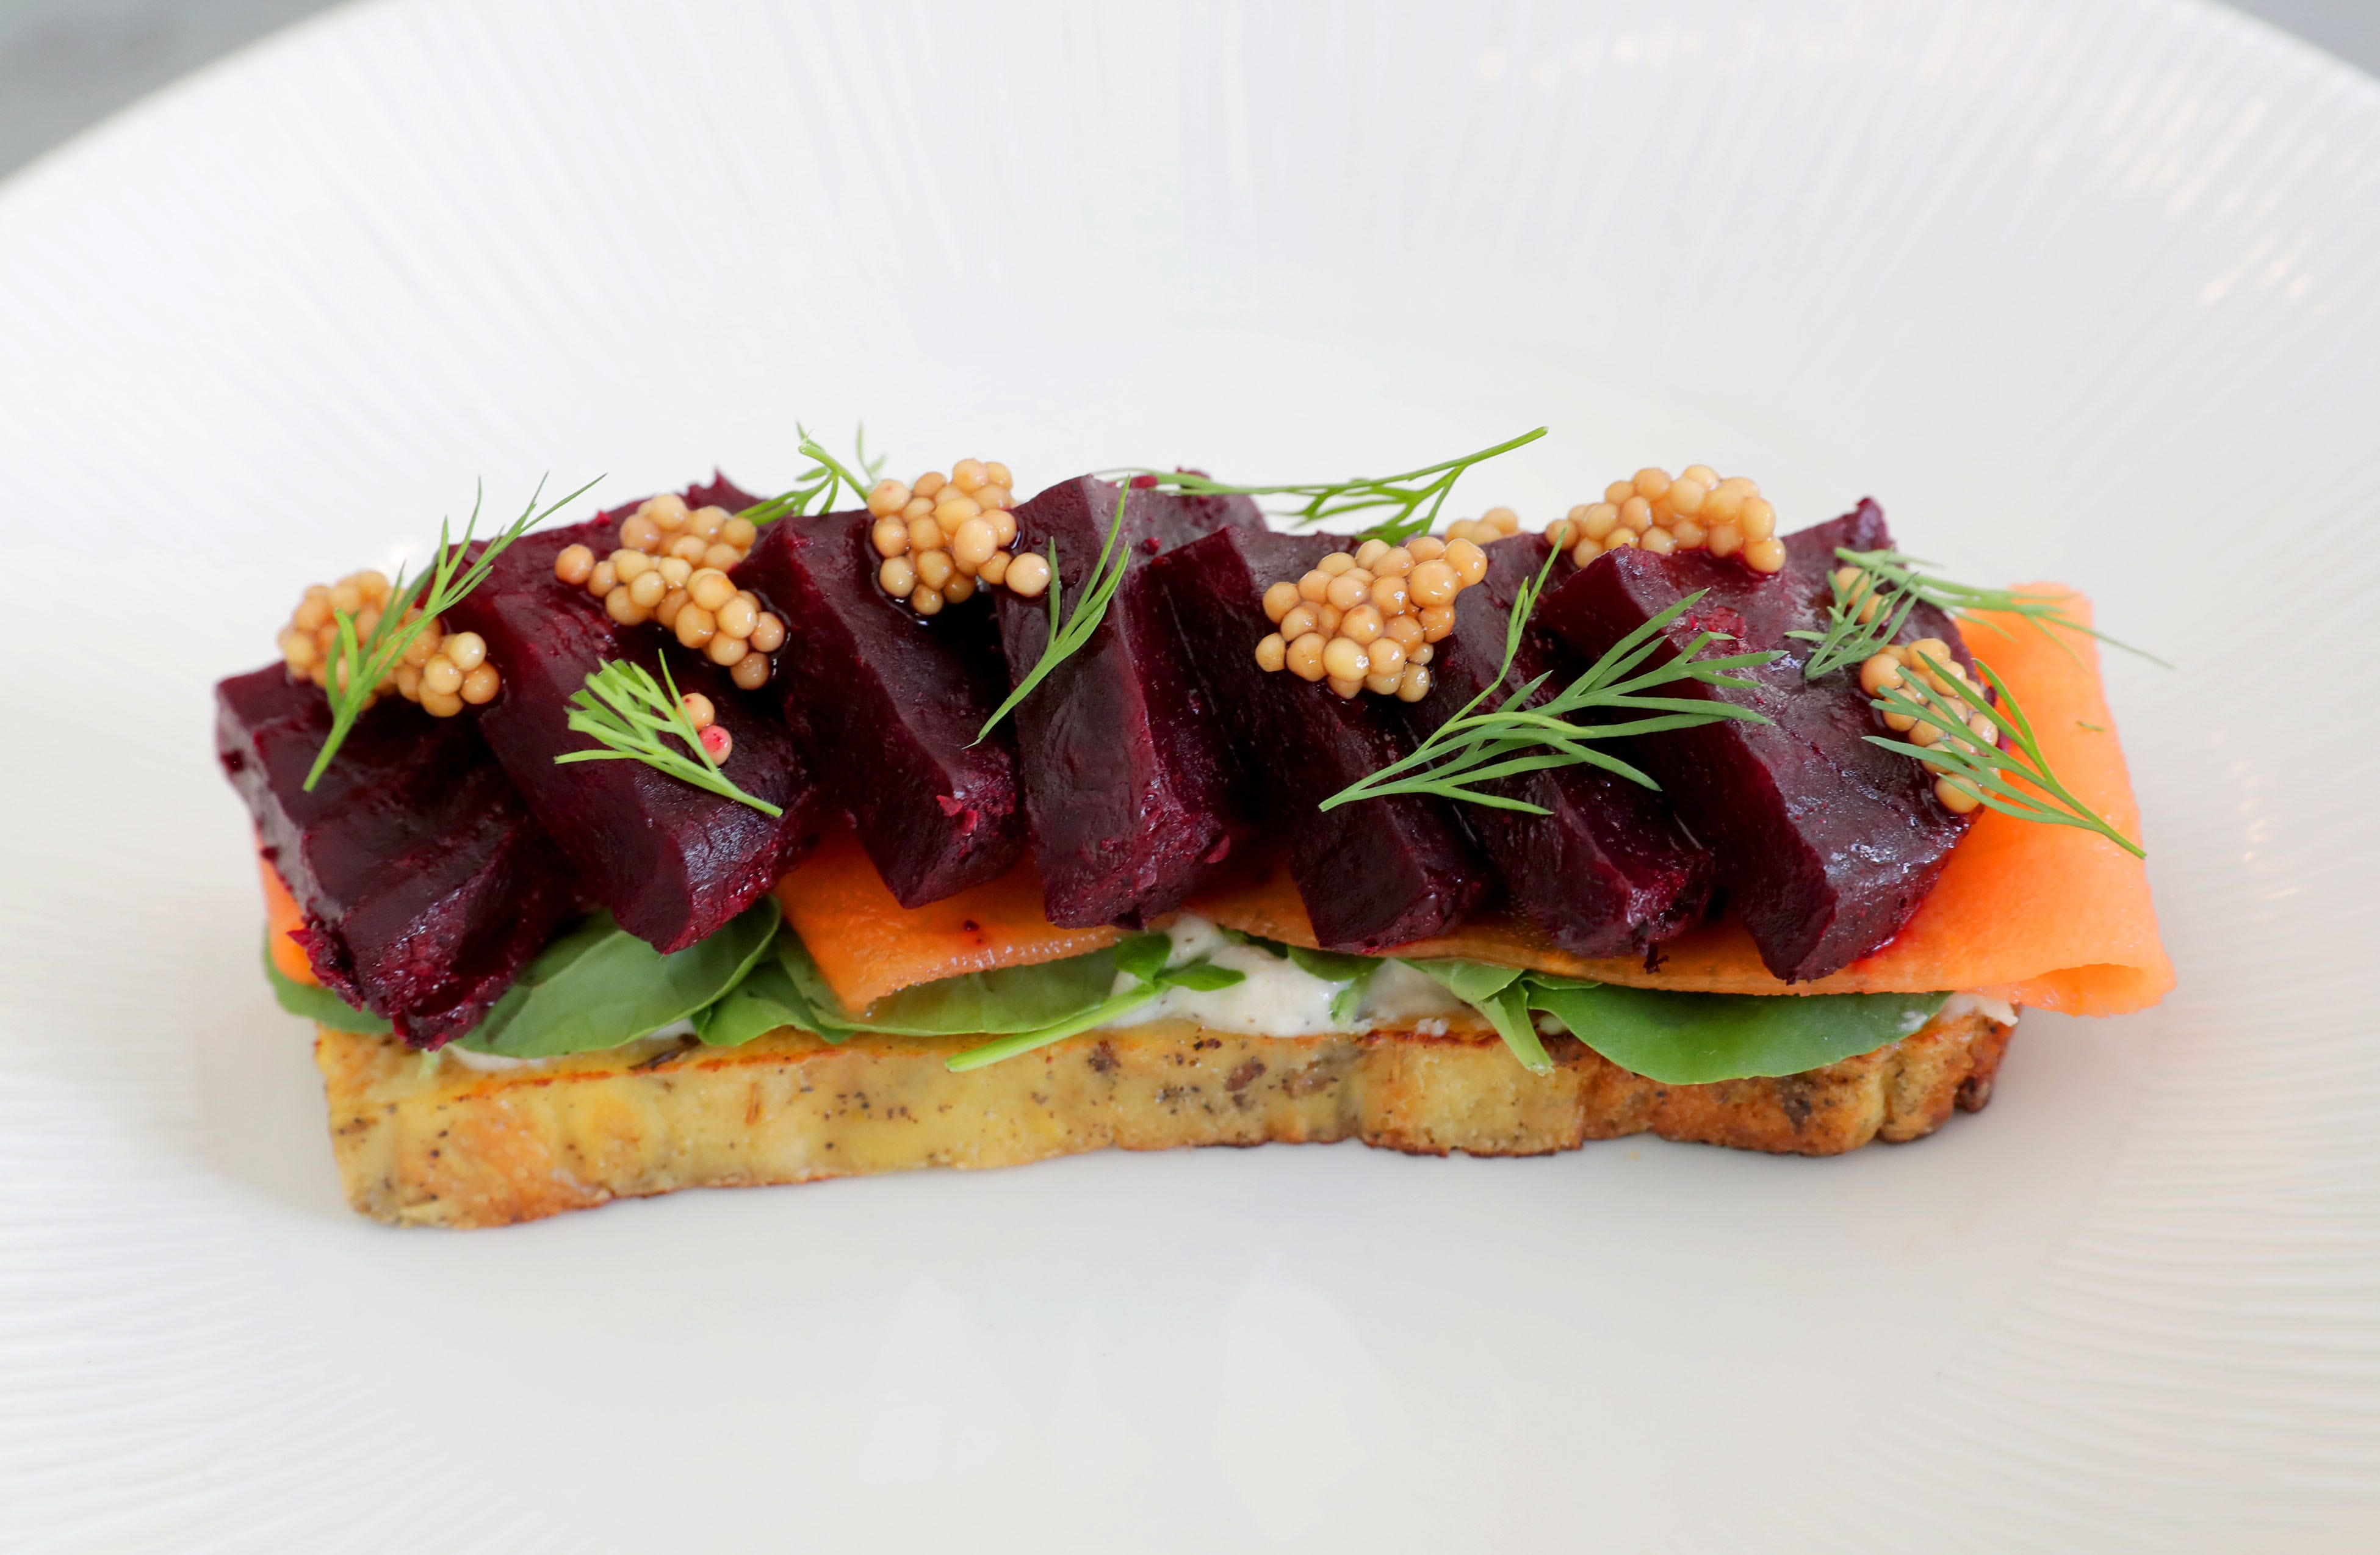 Beets seasoned to taste like pastrami are placed over pain perdu — French toast — with spiced pickled mustard seeds, watercress, horseradish creme fraiche, and pickled carrots for an appetizer at Buckley's Restaurant.